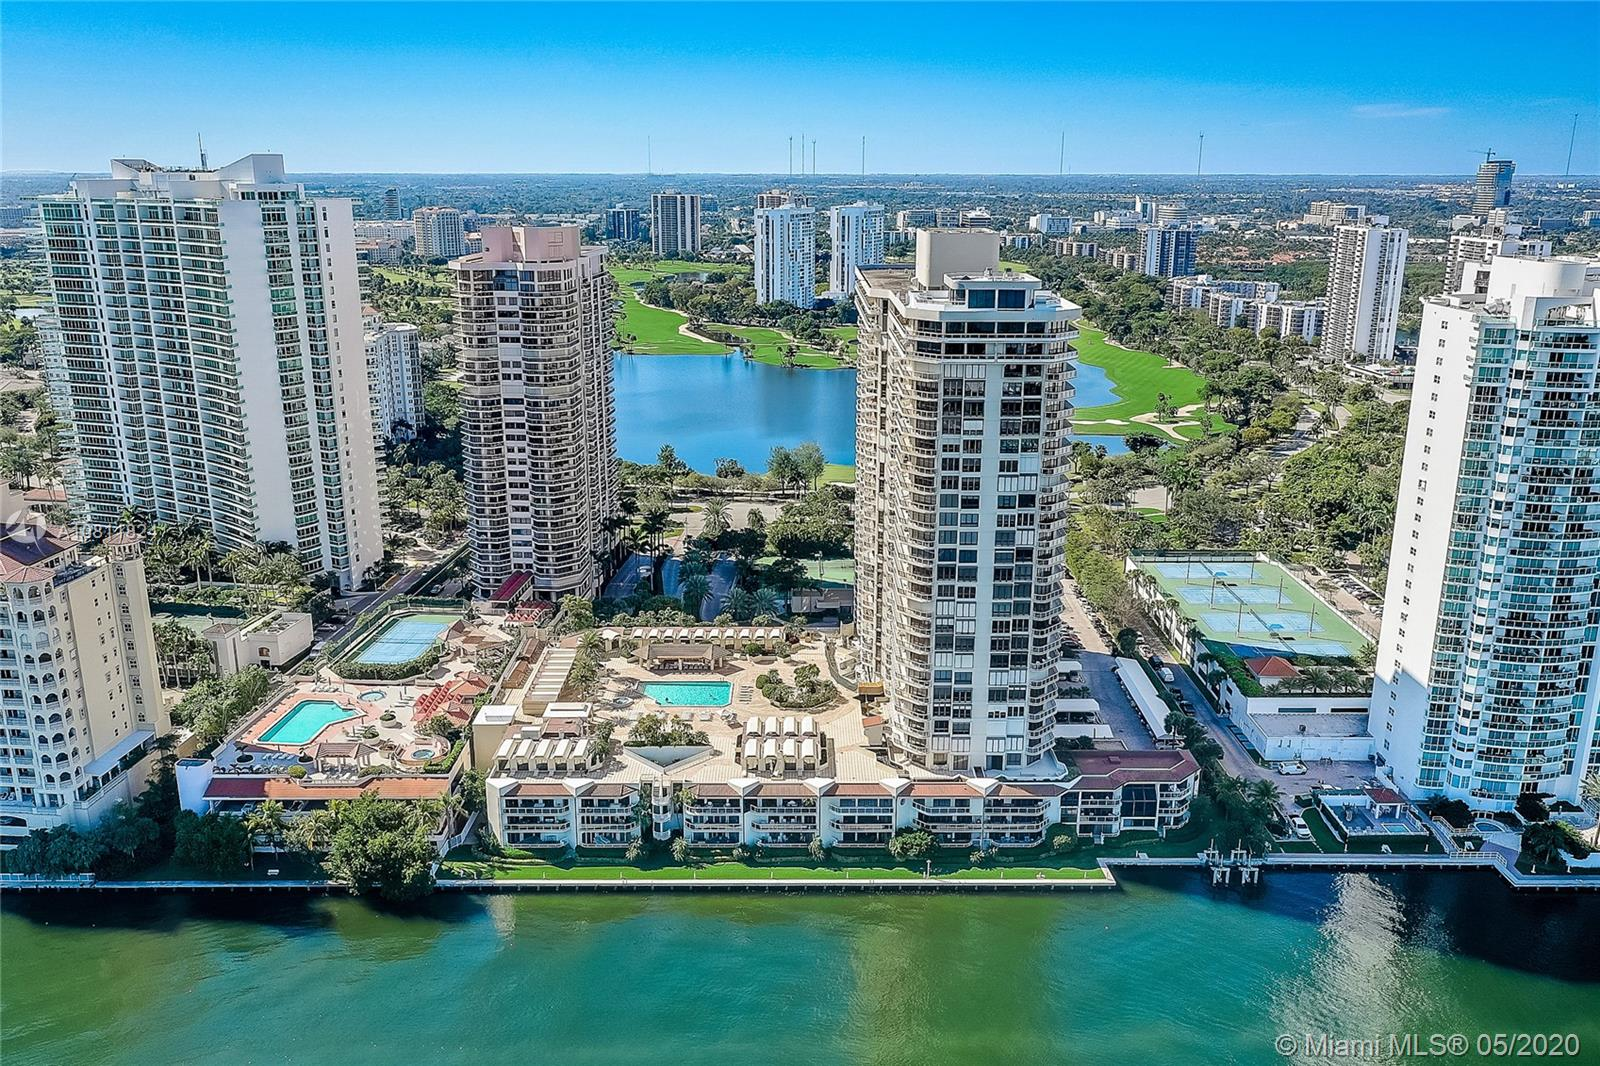 20191 E Country Club Dr 2301, Aventura, FL 33180